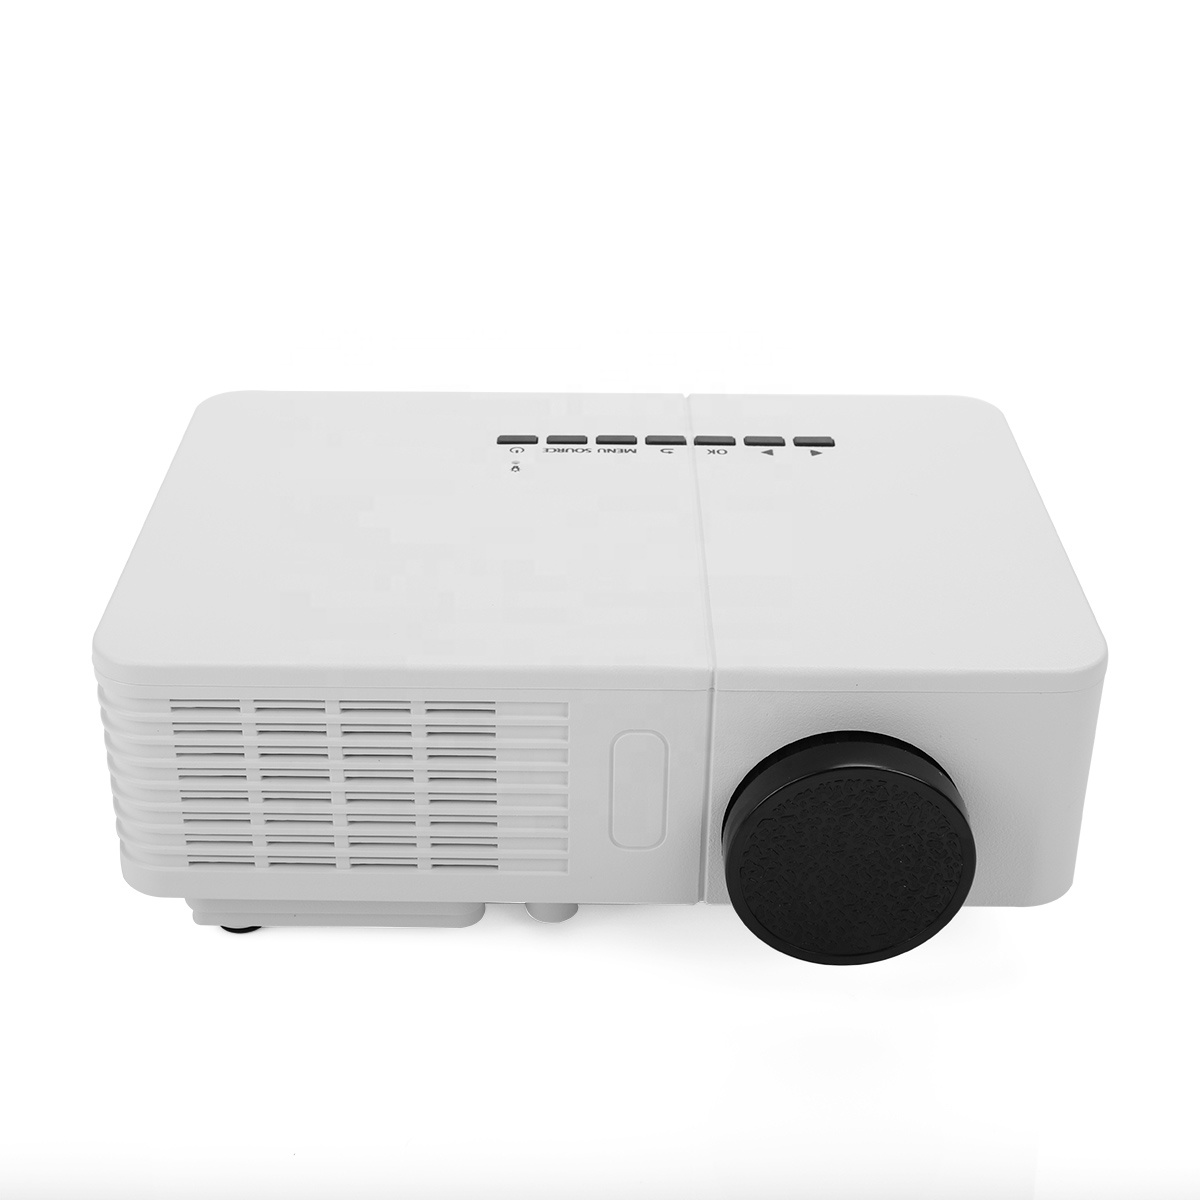 Alibaba.com / New hot mini portable led projector home theater projector YG300 and  OWLENZ SD20 beamer